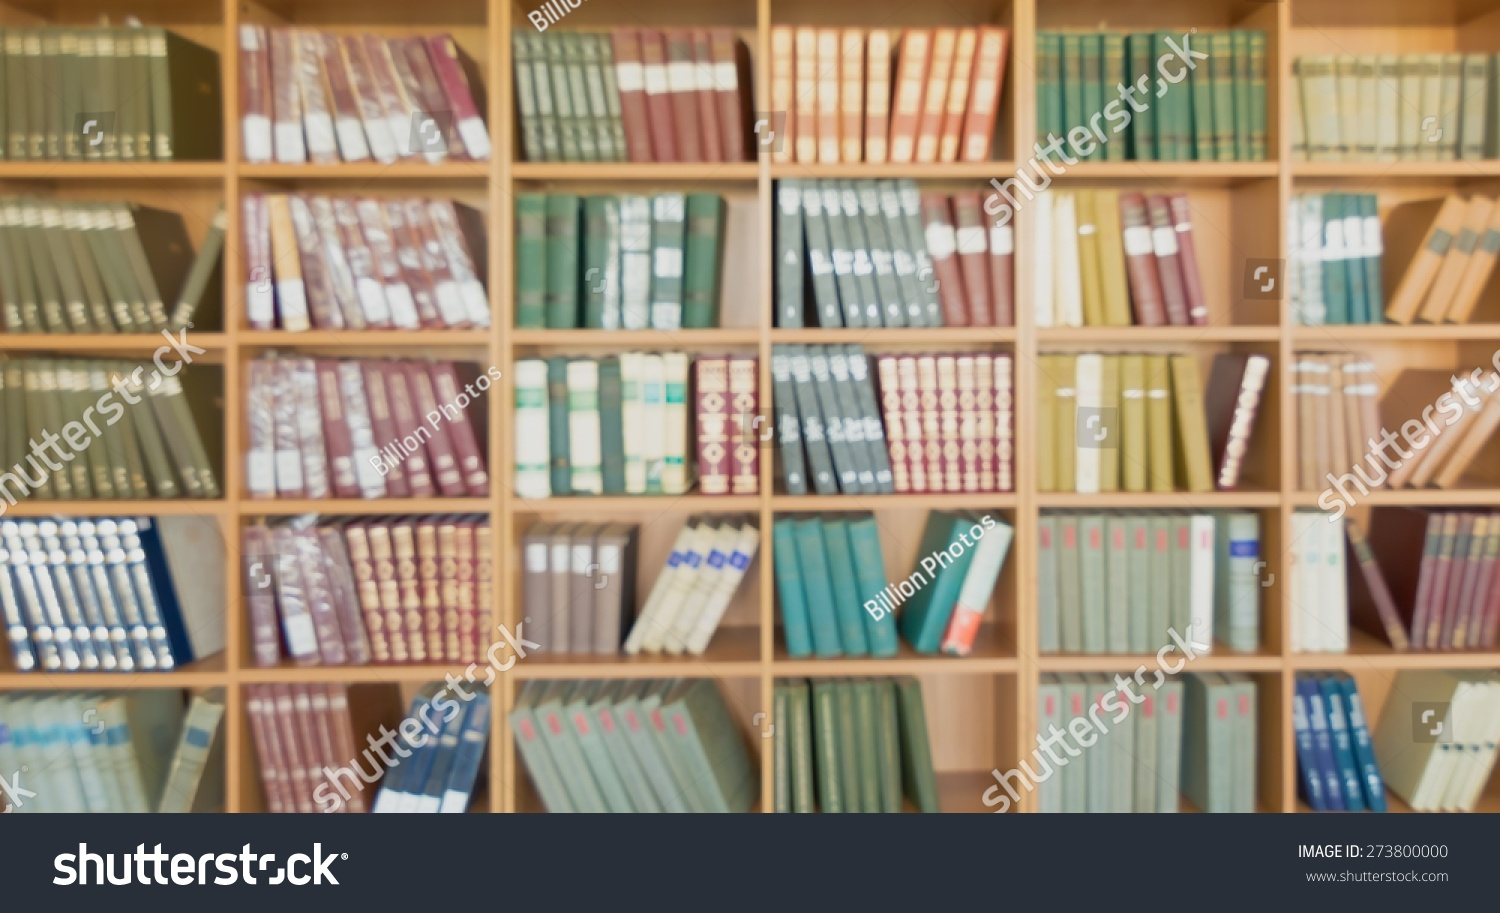 Bookshelf Shelf Student